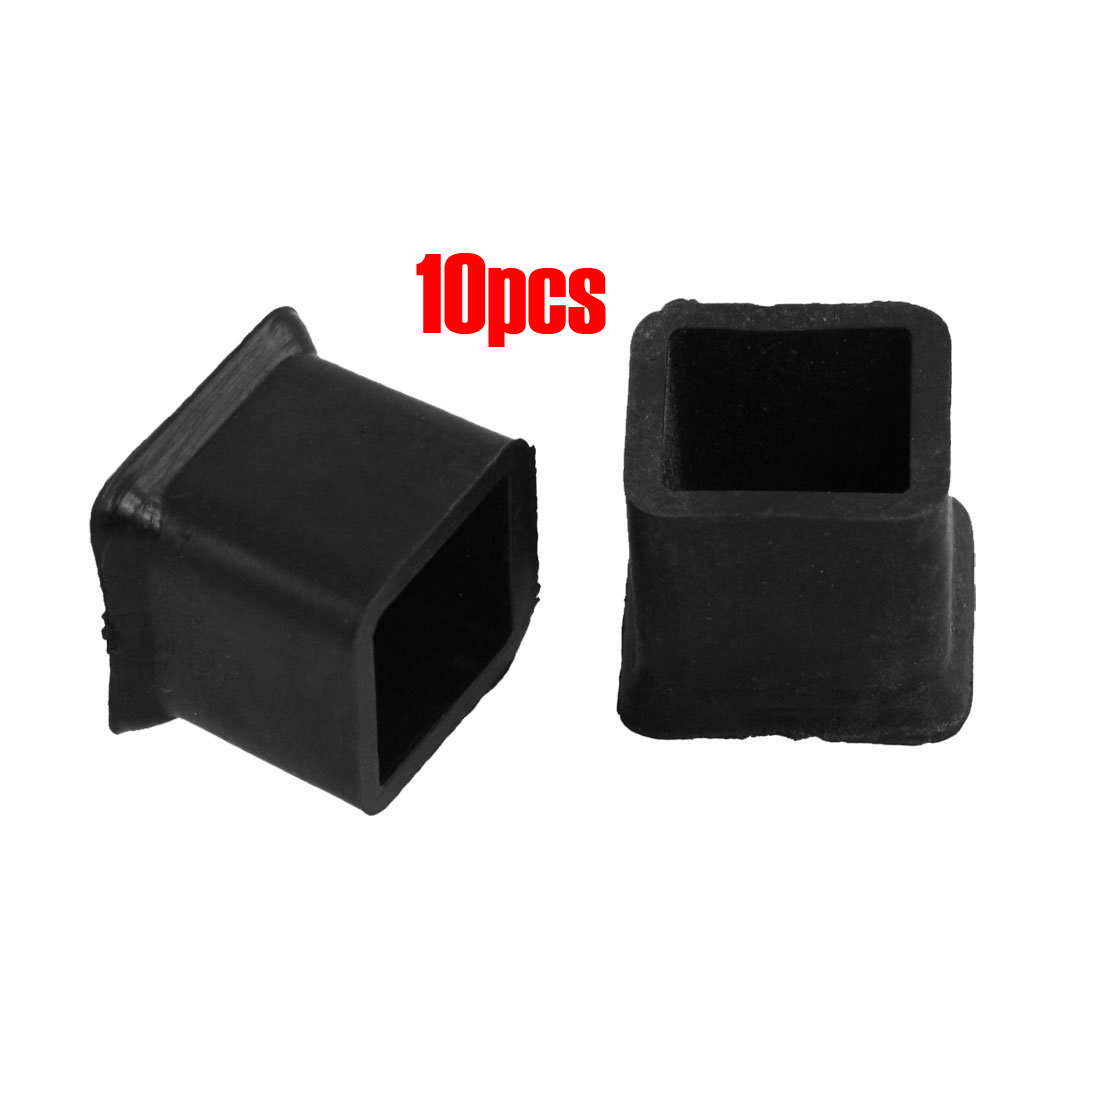 Fashion-10 Pcs Furniture Chair Table Leg Rubber Foot Covers Protectors 20mm x 20mmFashion-10 Pcs Furniture Chair Table Leg Rubber Foot Covers Protectors 20mm x 20mm